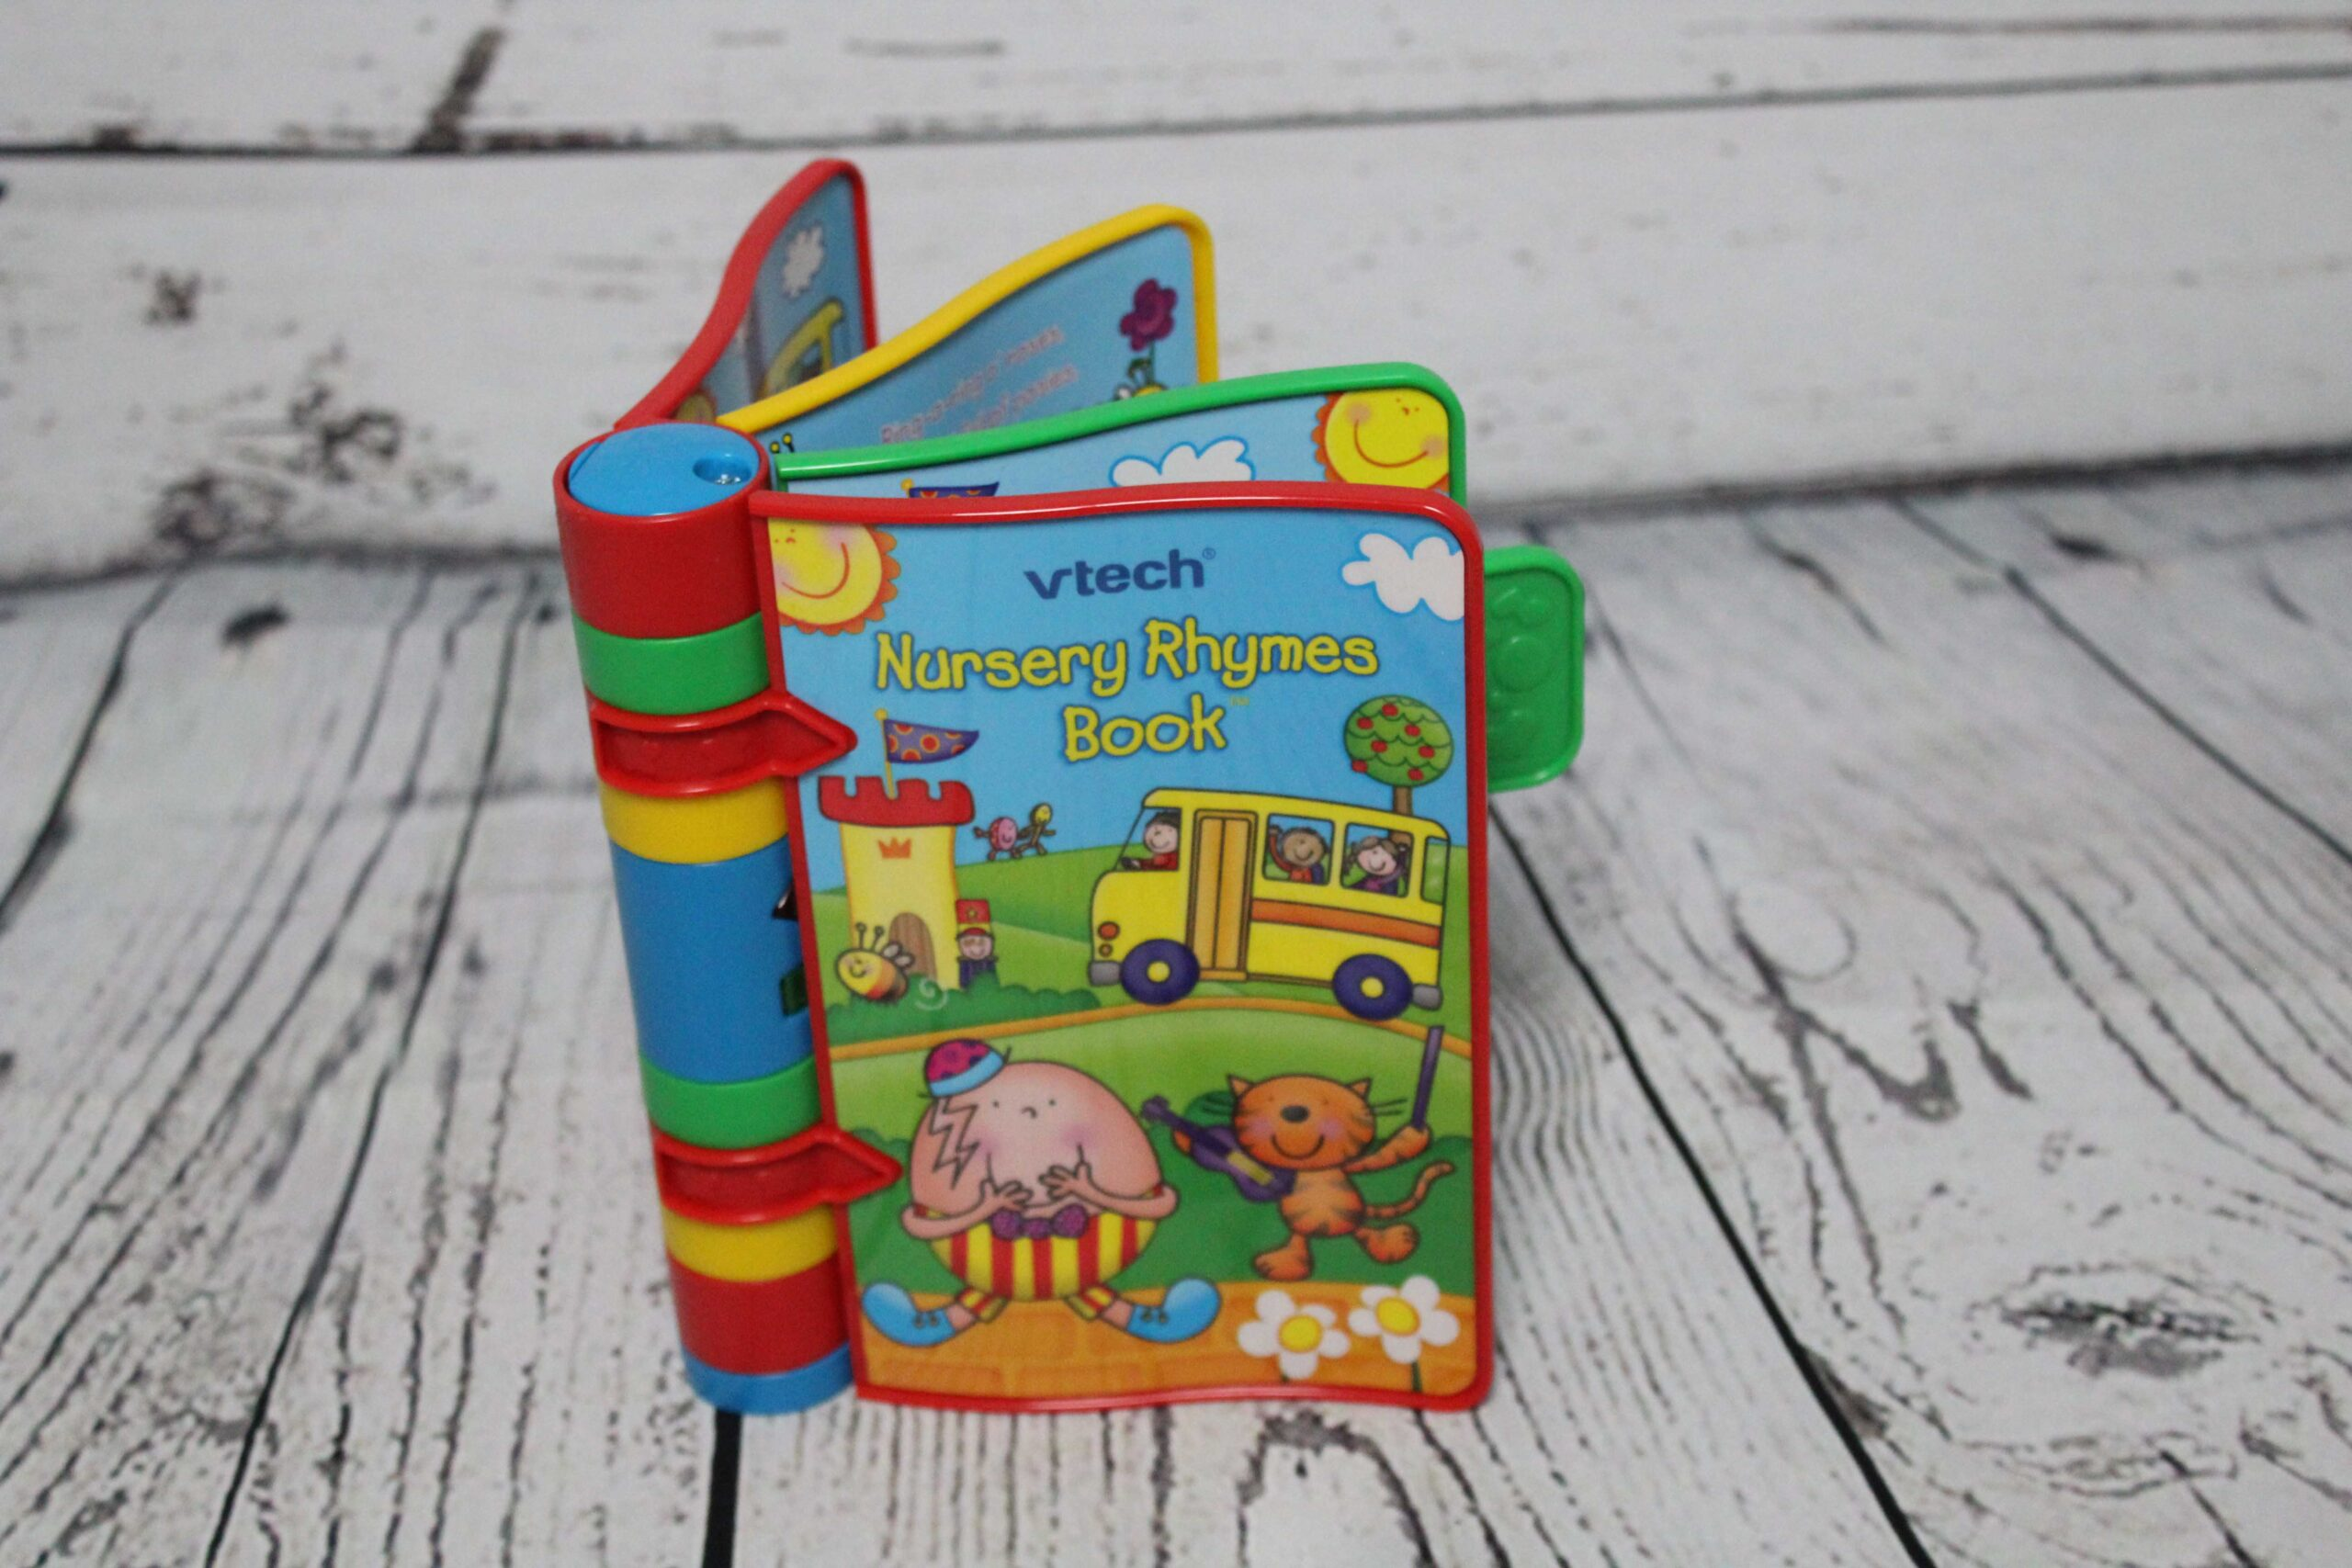 A colourful childrens book on a wooden background